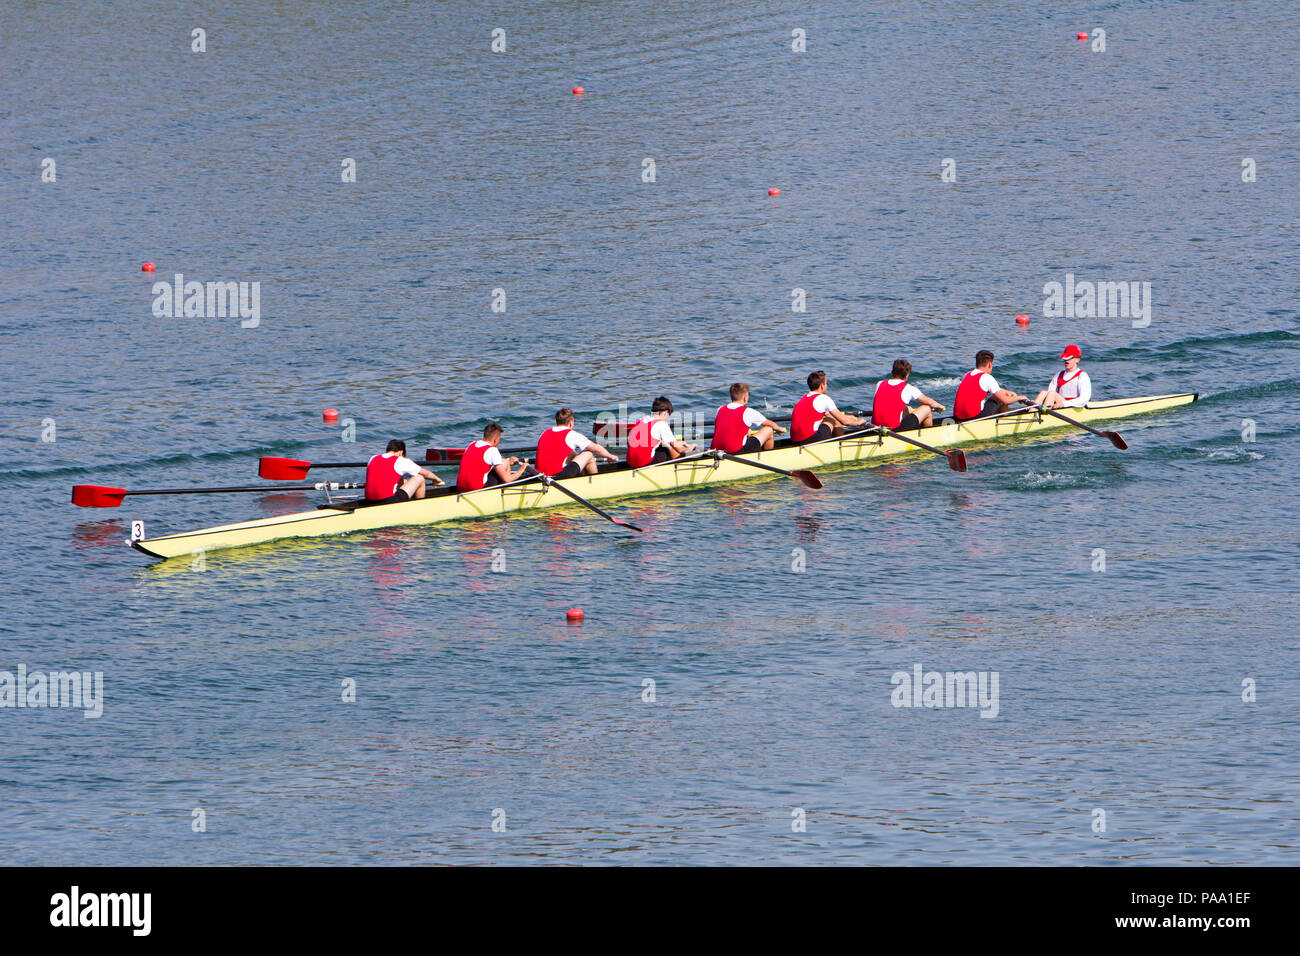 Huit rameurs aviron barques sur le lac tranquille Photo Stock